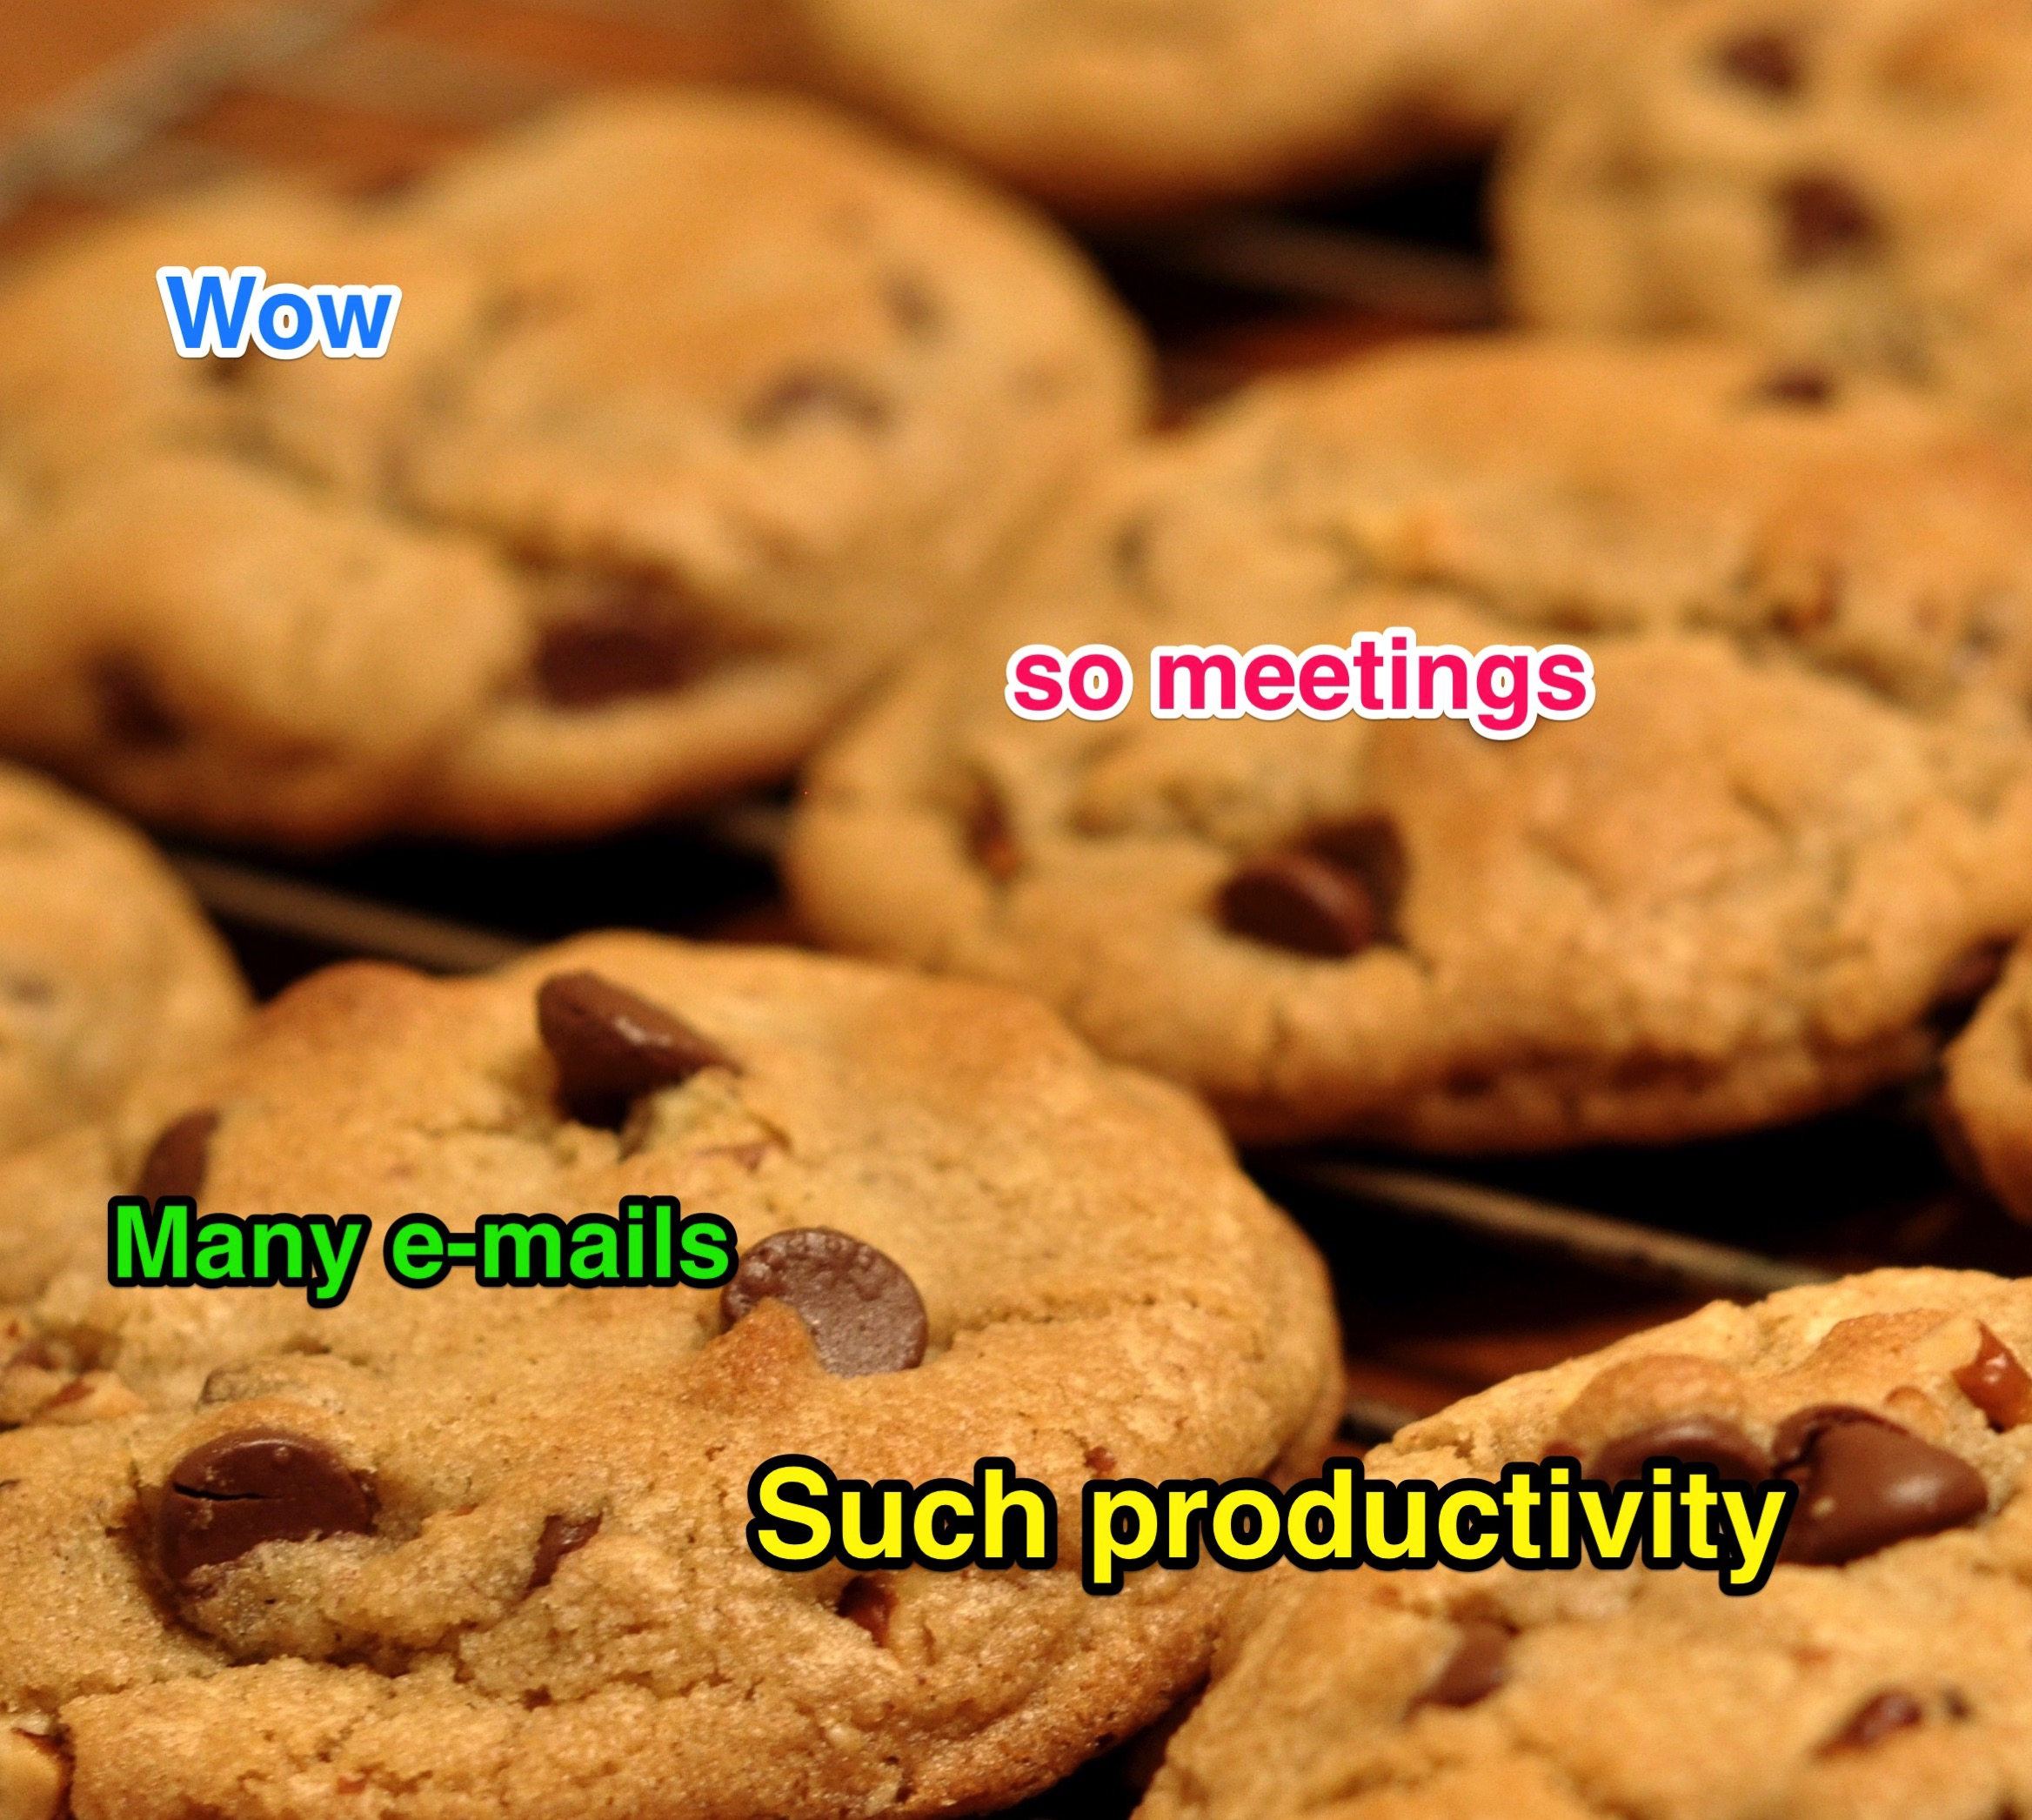 productivity-cookies.jpg